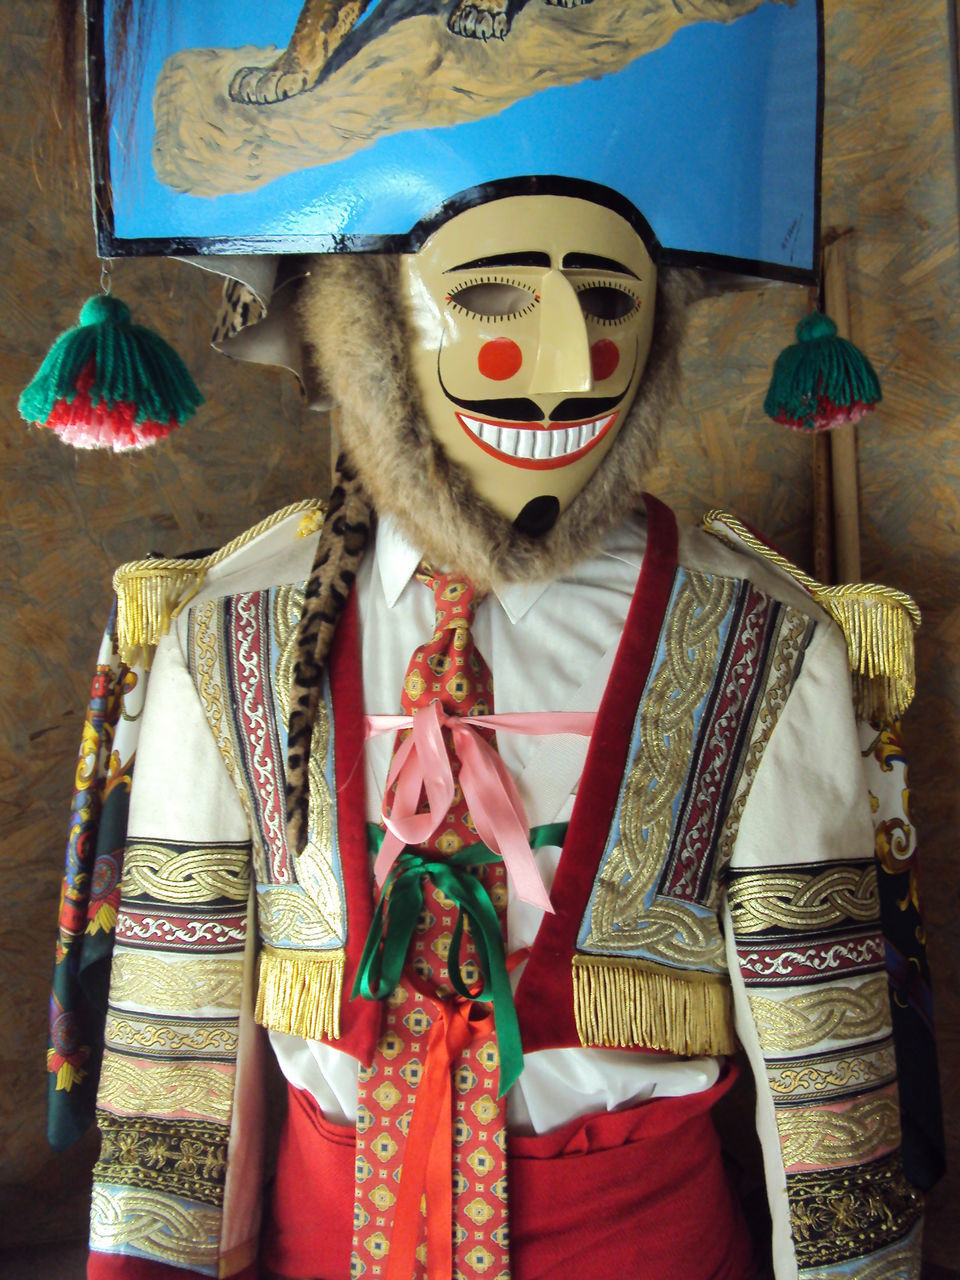 FULL LENGTH OF MAN STANDING BY MASK IN TRADITIONAL CLOTHING